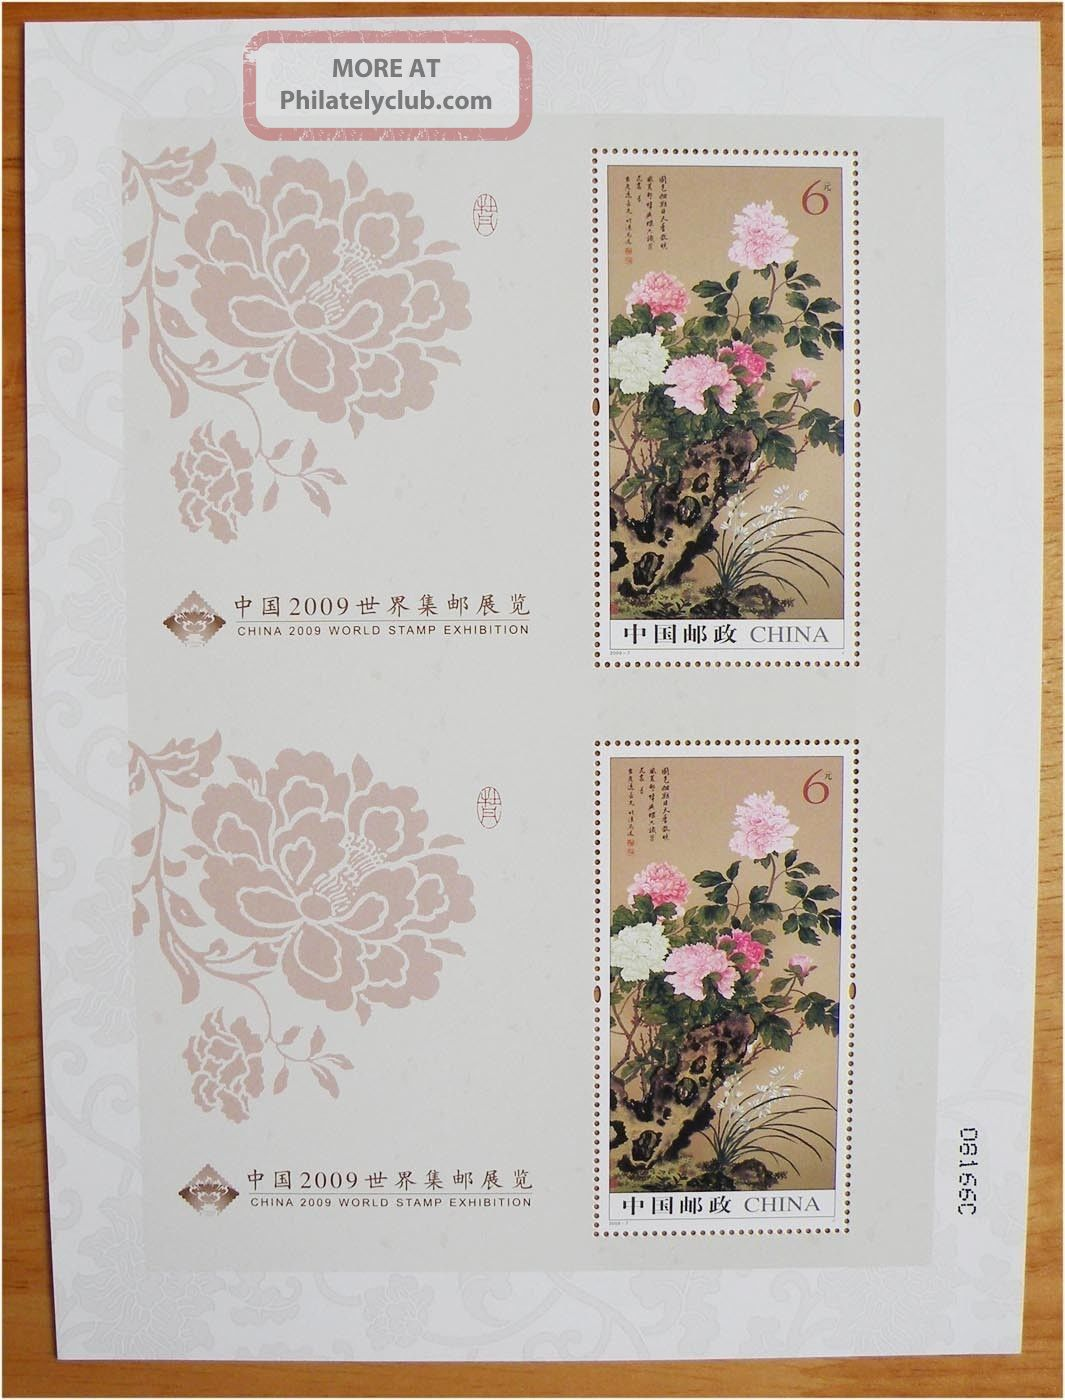 China Stamp 2009 - 7m World Stamp Exhibition (peony) Uncut - Duouble S/s Asia photo